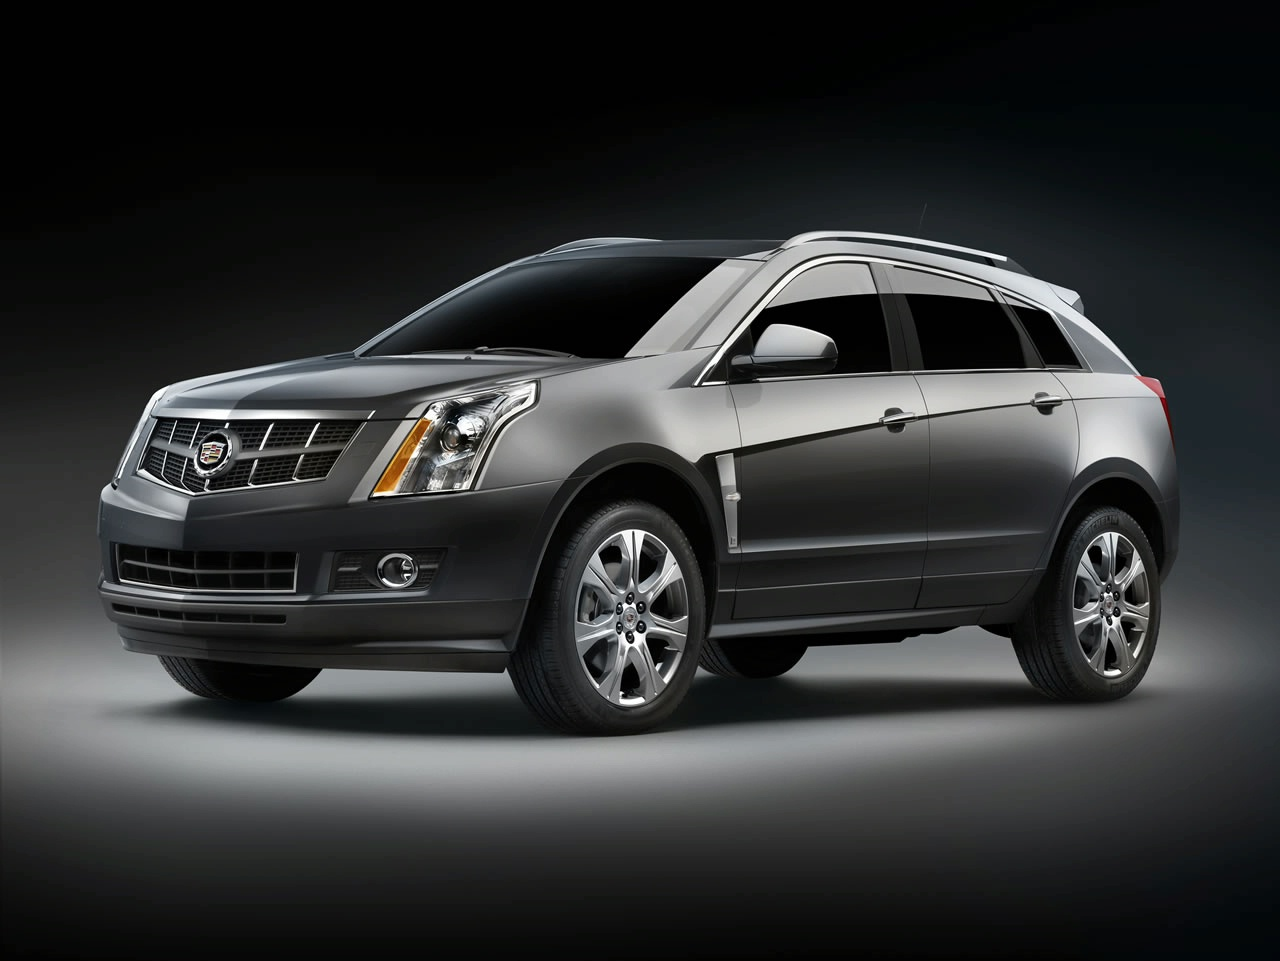 cadillac features performance ratings review reviews srx design